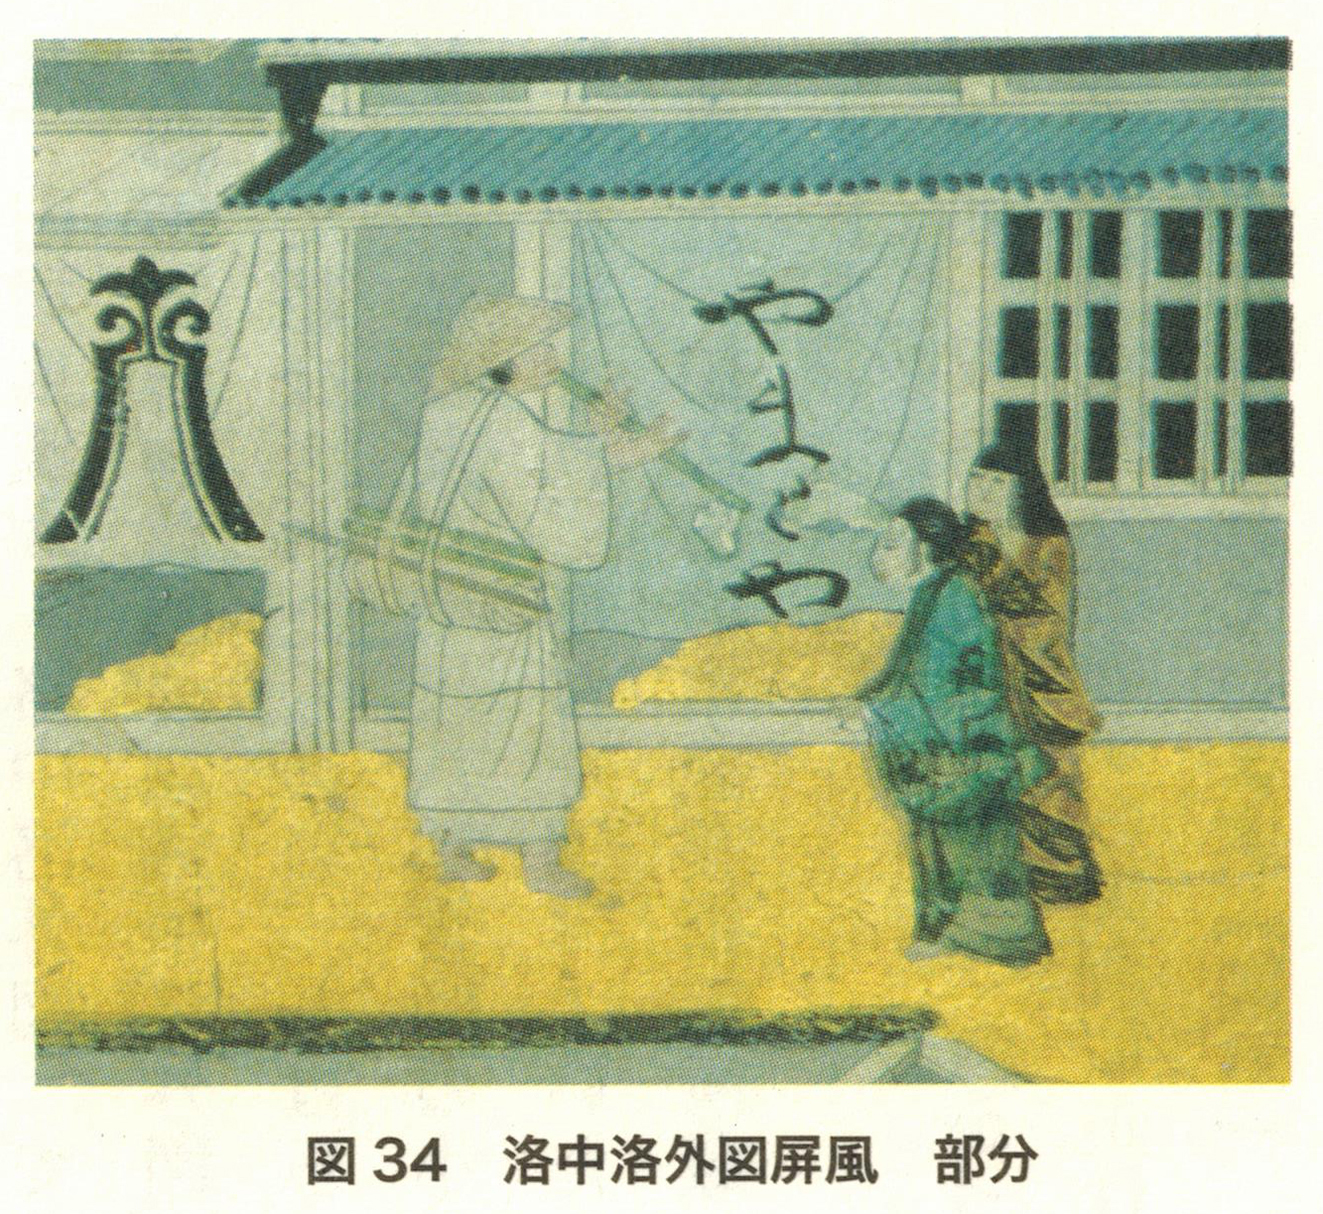 Picture of a Komosō in a Kyōto street